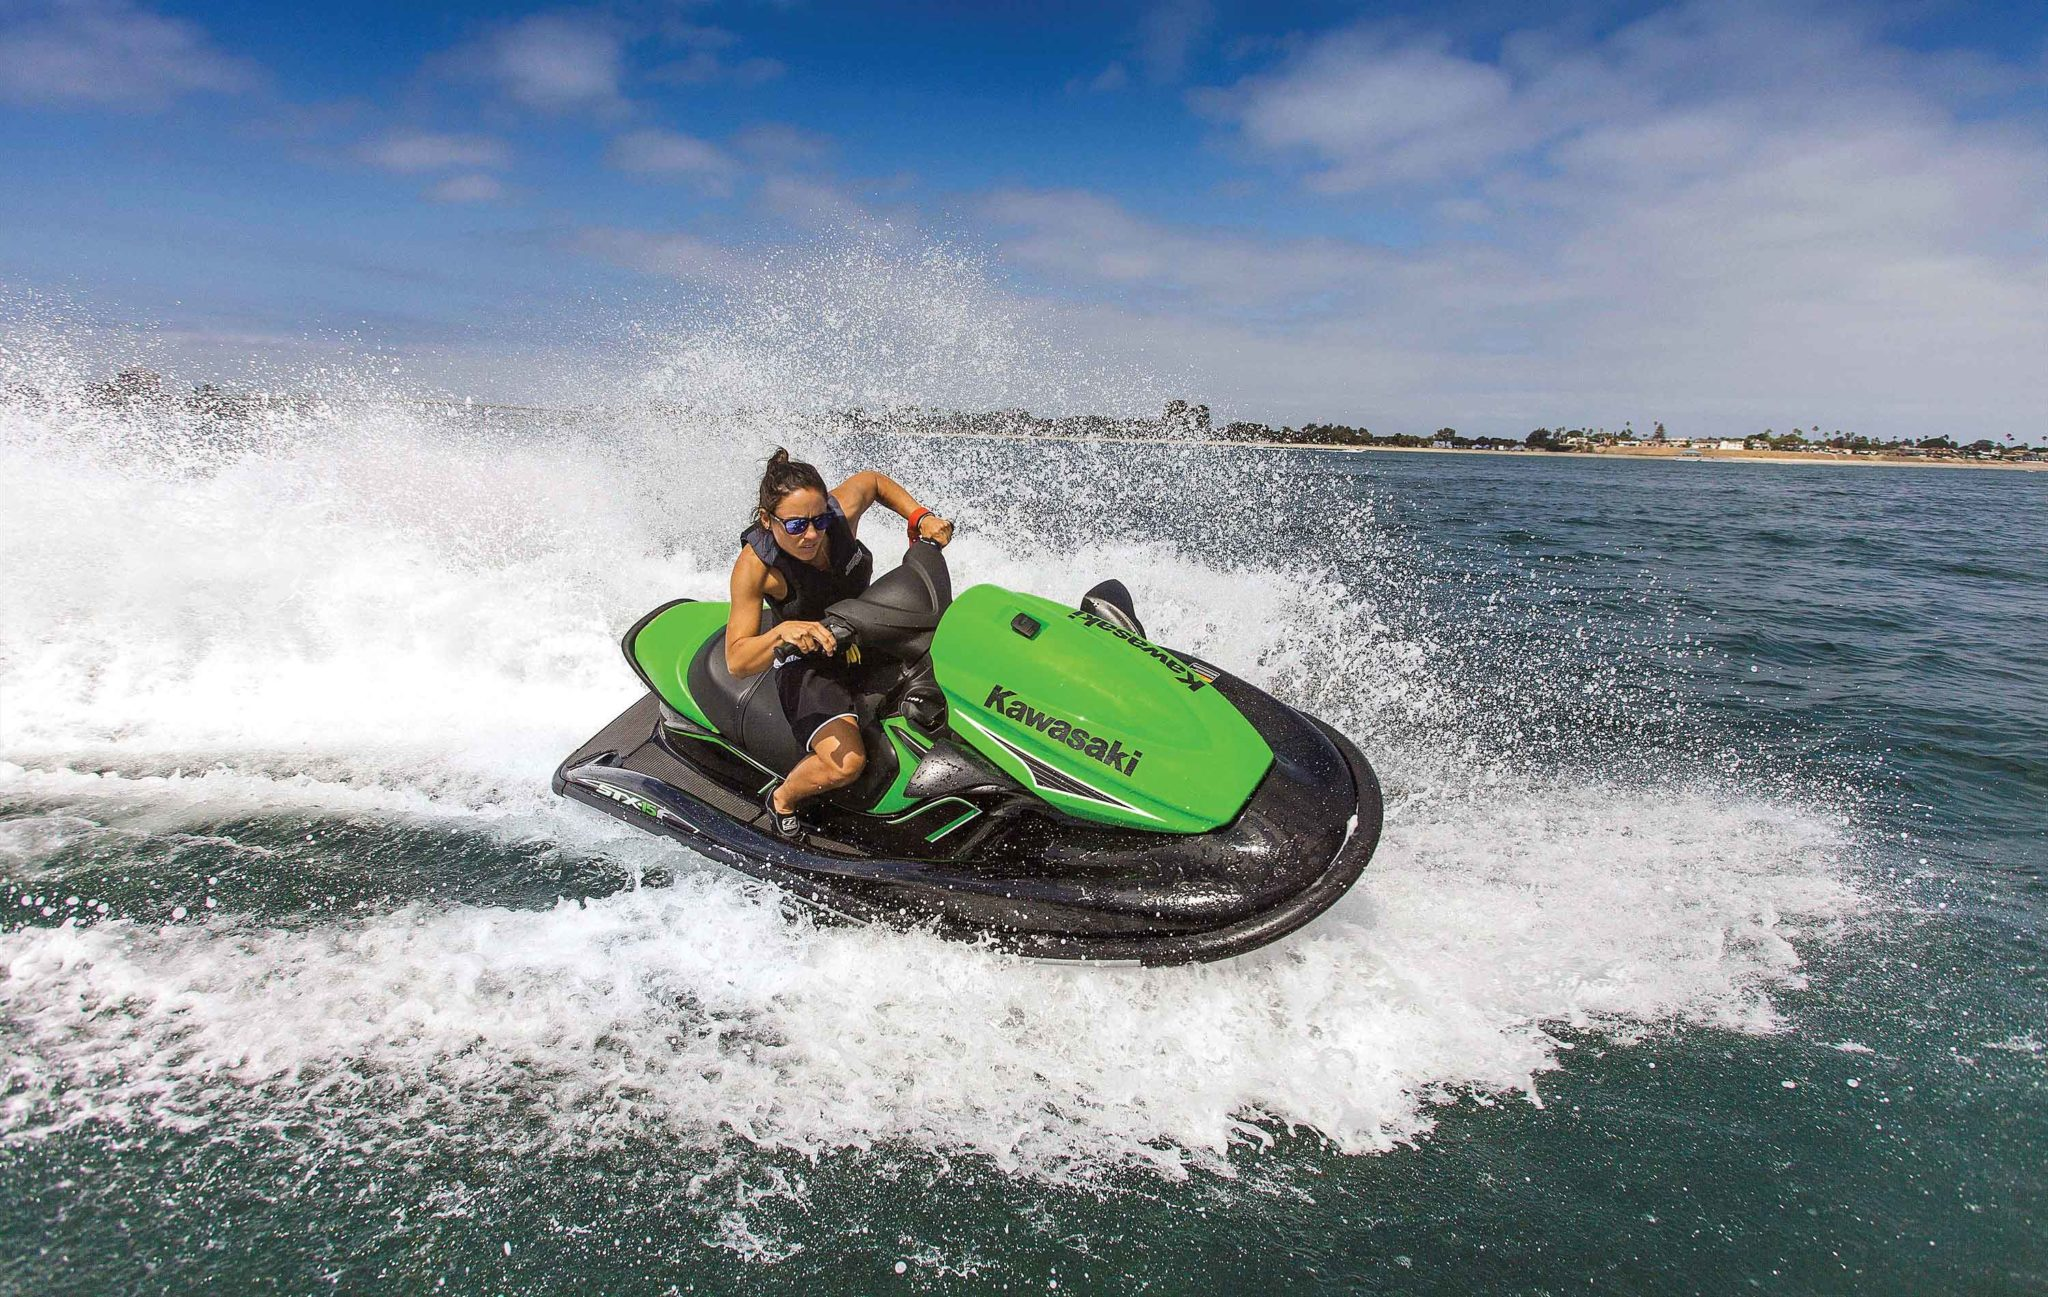 Kawasaki S 2015 Jet Ski Lineup Revealed Powersports Business